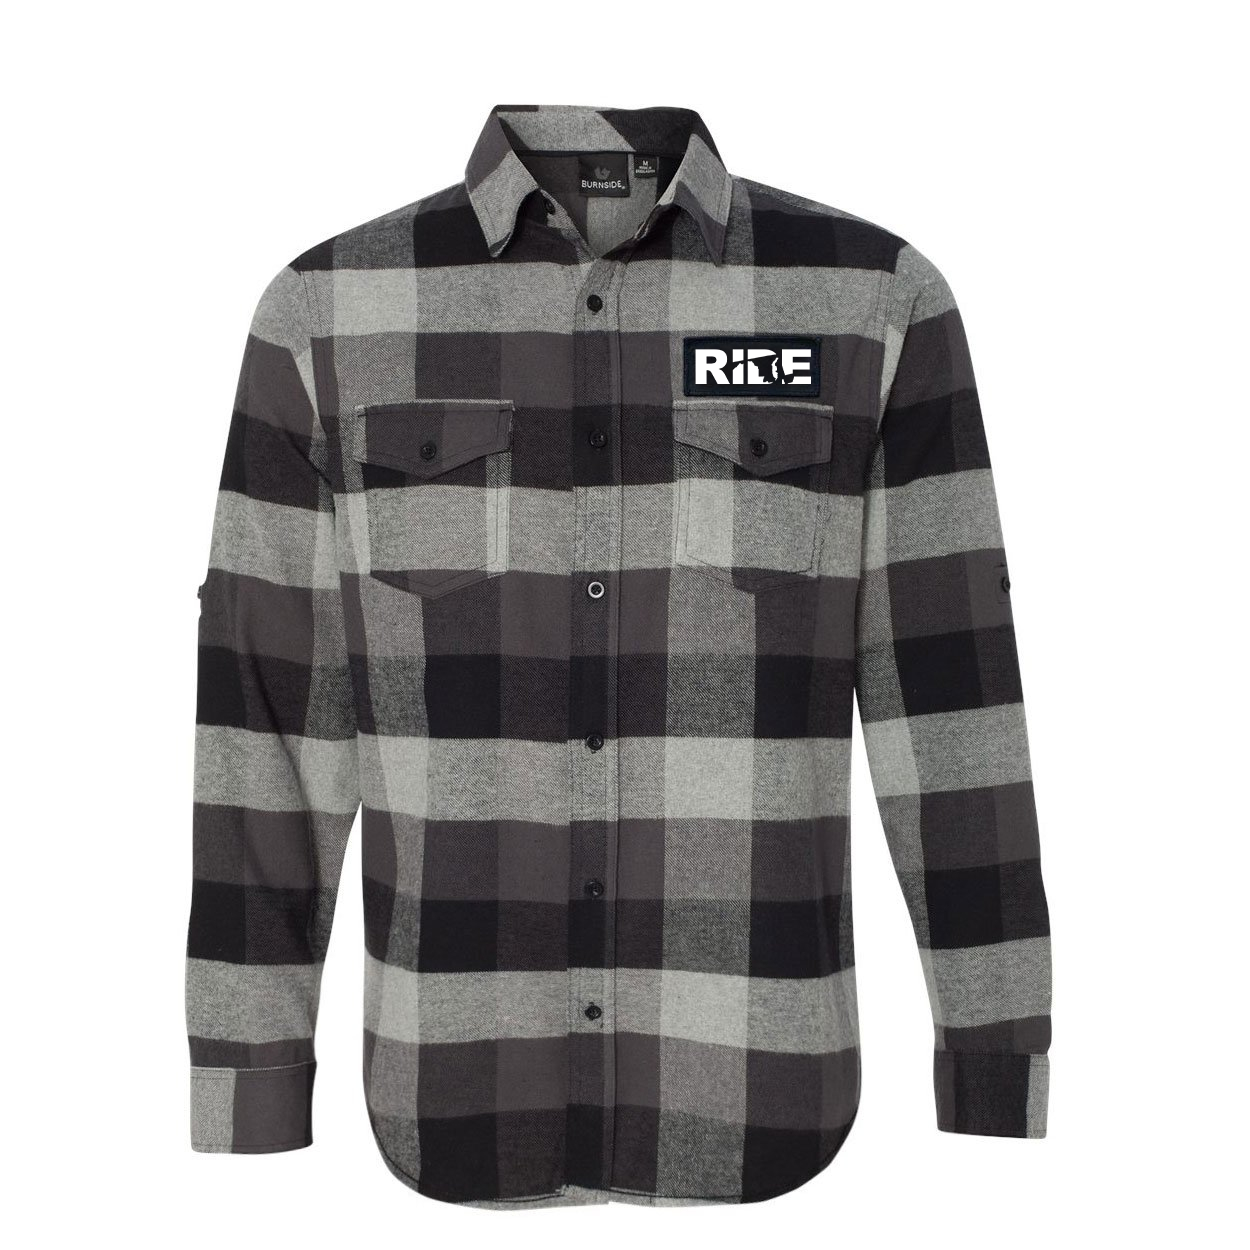 Ride Maryland Classic Unisex Long Sleeve Woven Patch Flannel Shirt Black/Gray (White Logo)